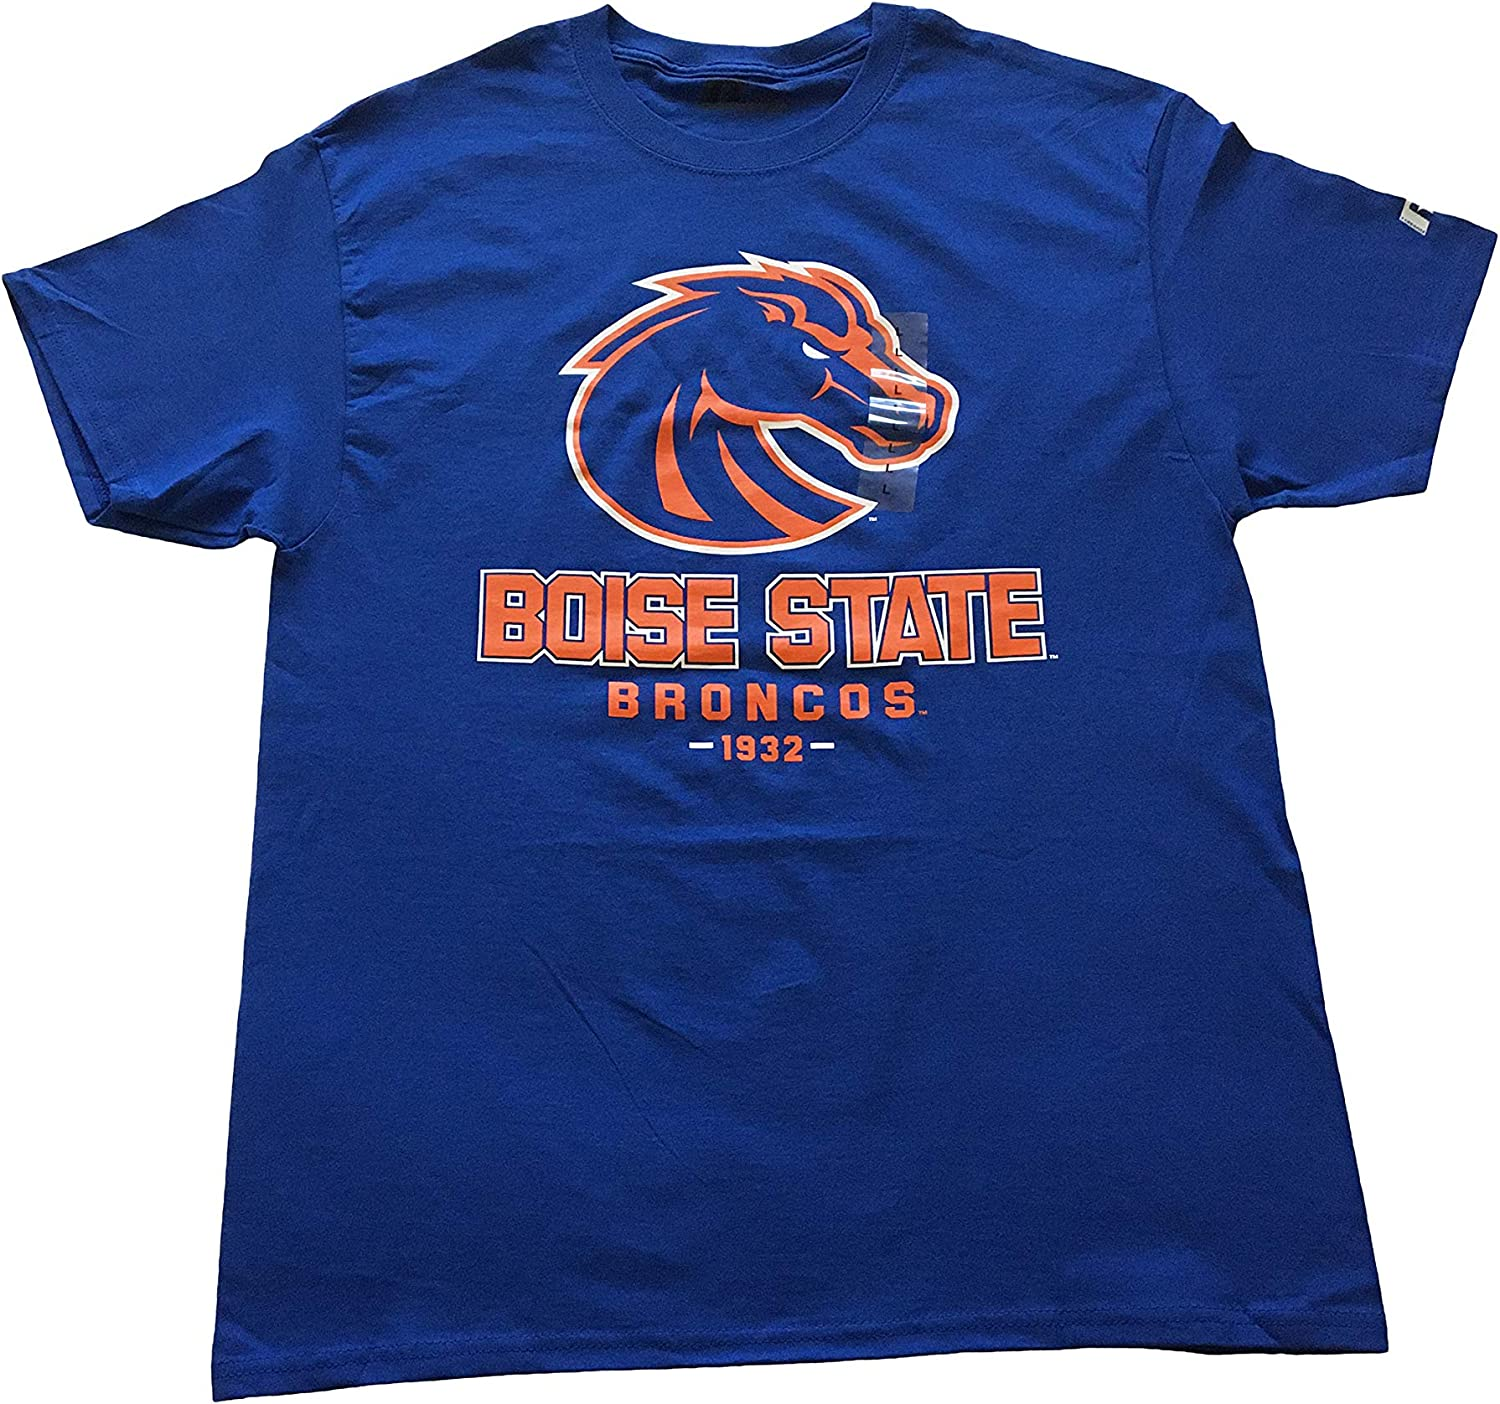 Russel Boise State Broncos Printed Fan T-Shirts 100/% Cotton Blue and Orange